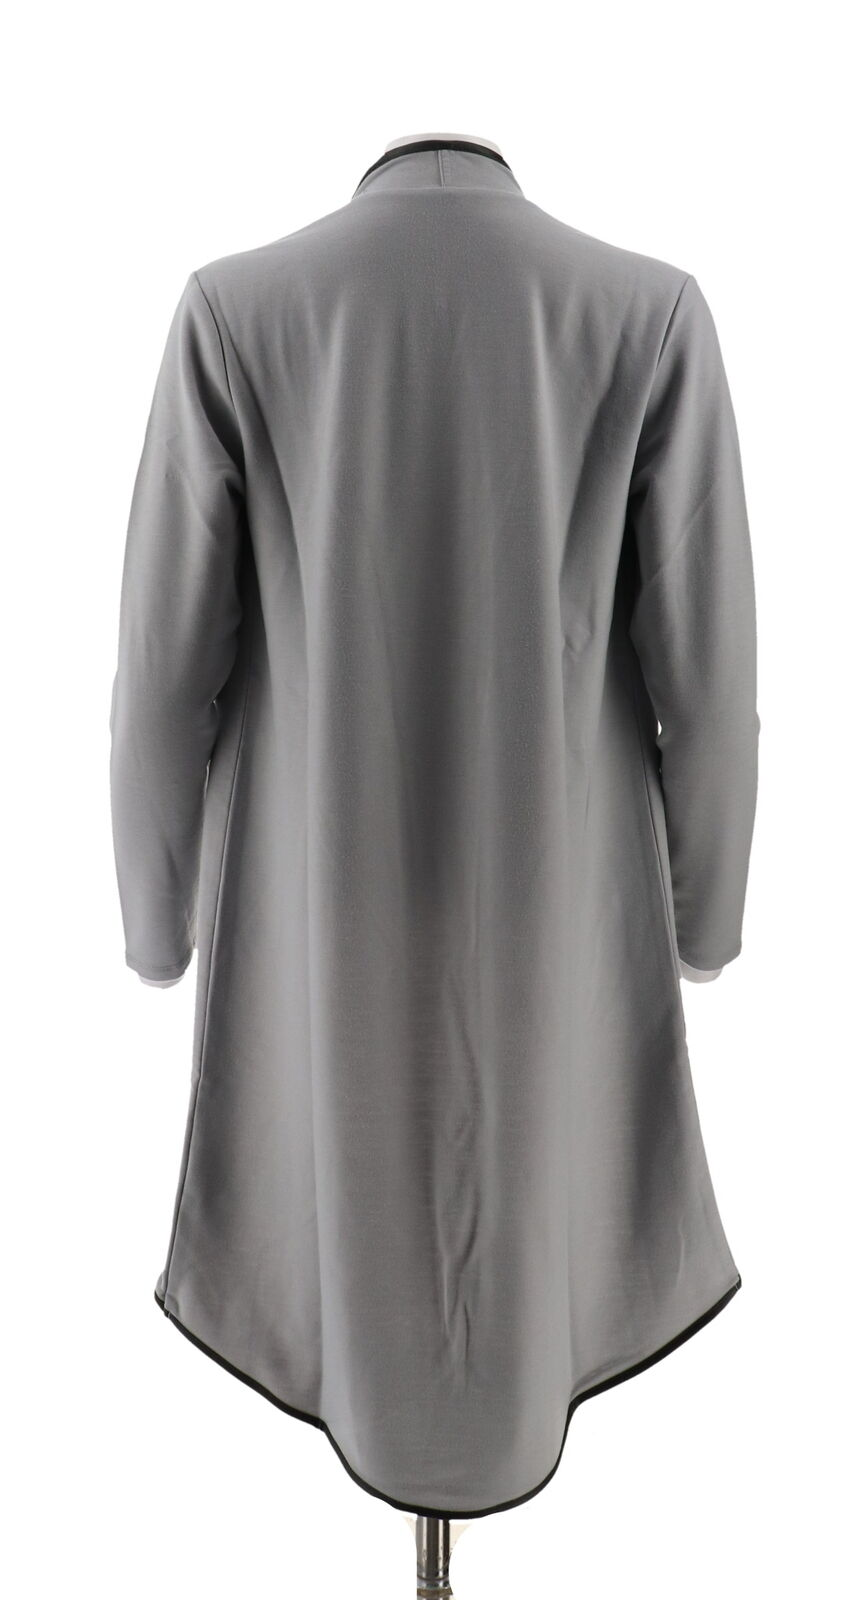 IMAN Global Luxurious Lightweight Knit Cascading Topper Gray S NEW 620-132